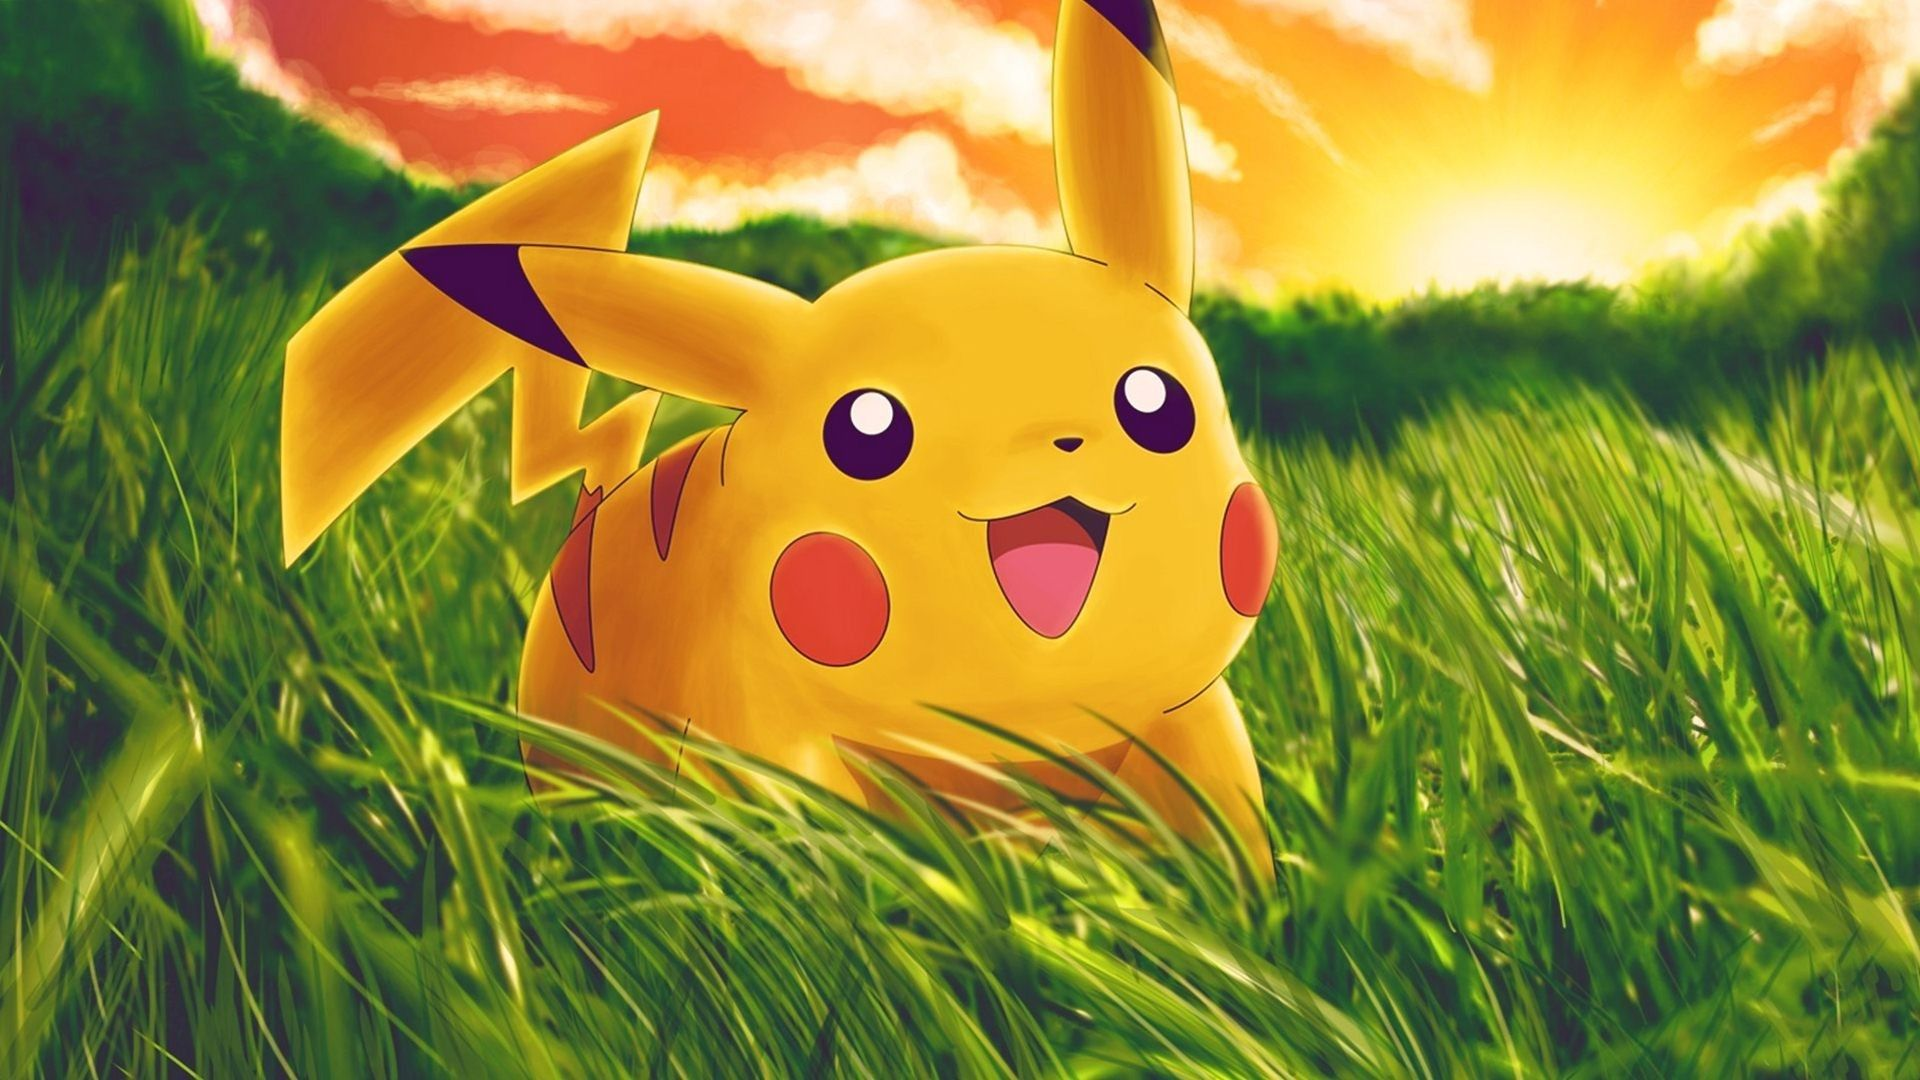 Cool Pikachu Wallpapers Top Free Cool Pikachu Backgrounds